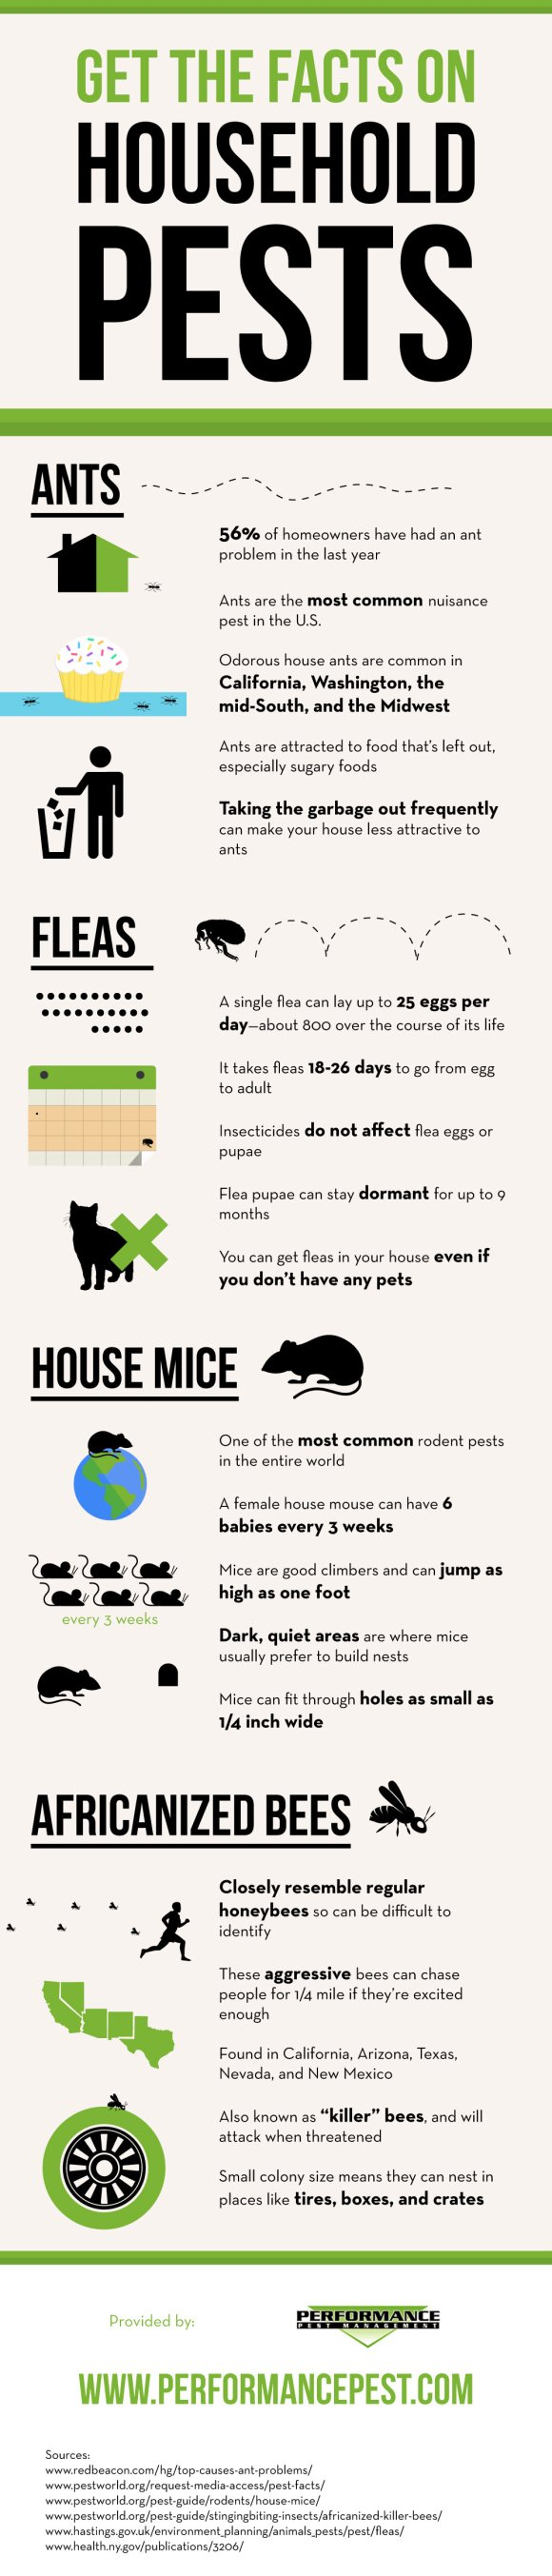 Get the Facts on Household Pests [INFOGRAPHIC] Pleasanton